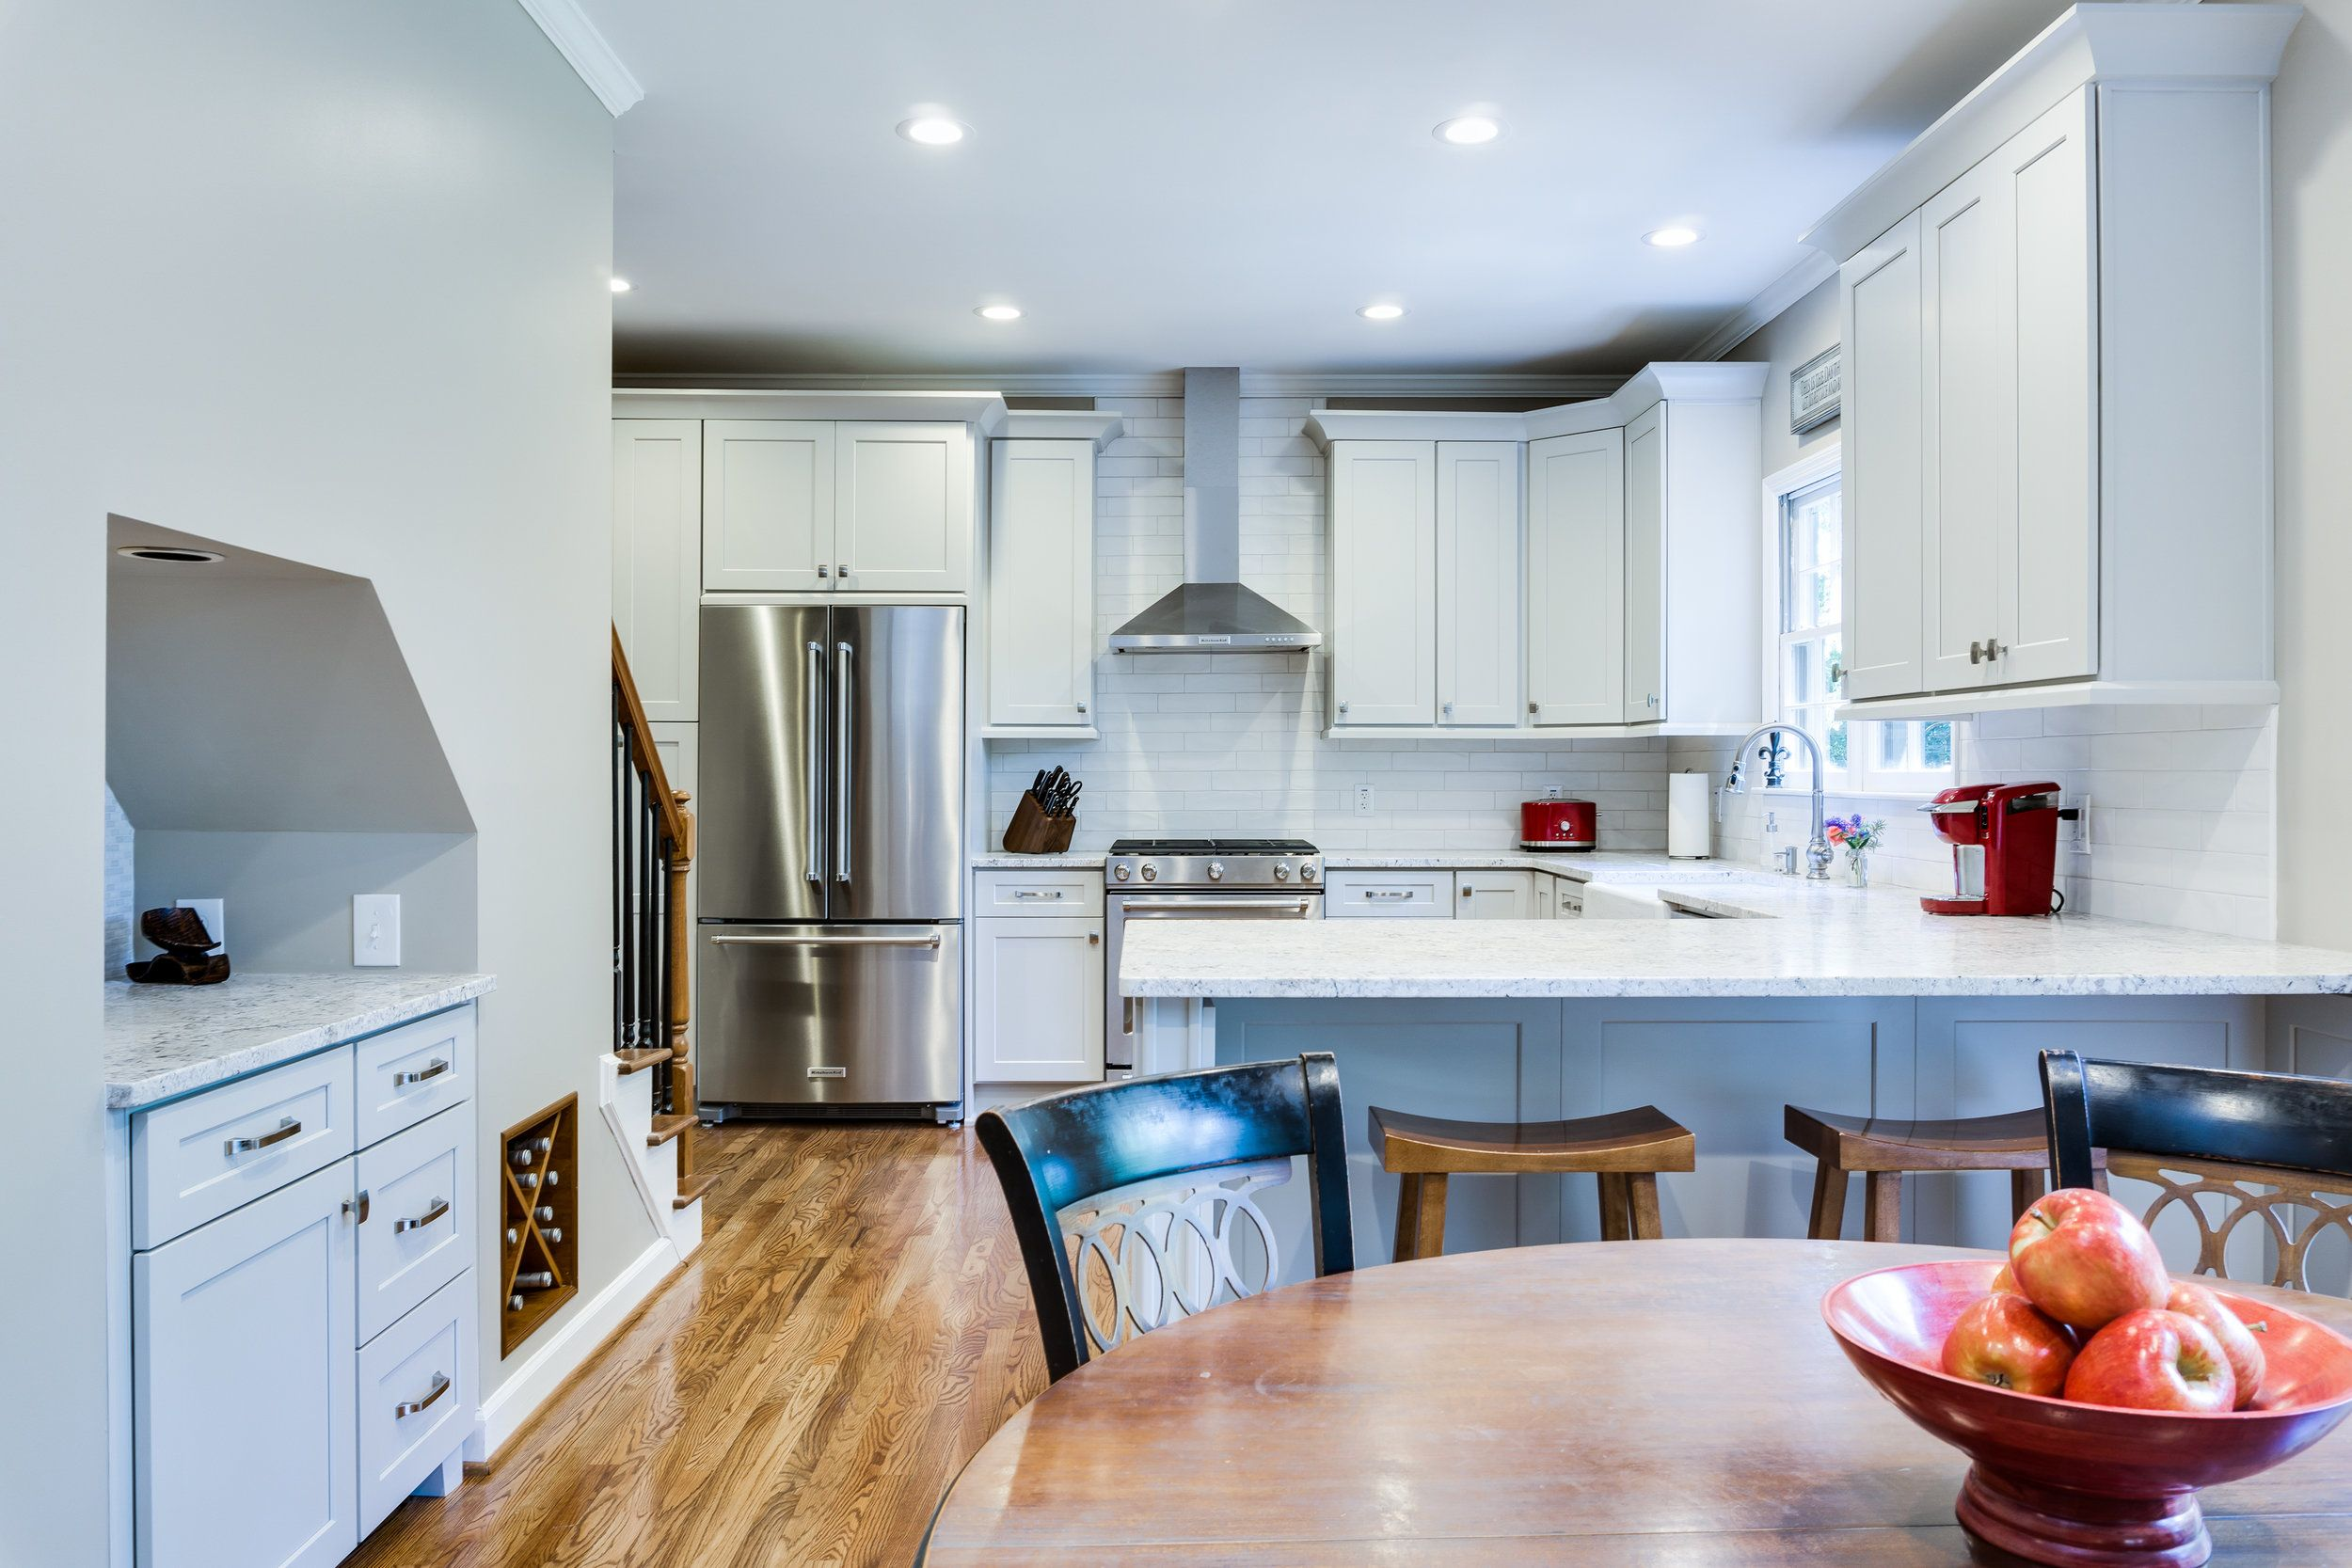 Transitional kitchen light grey shaker cabinets with white subway